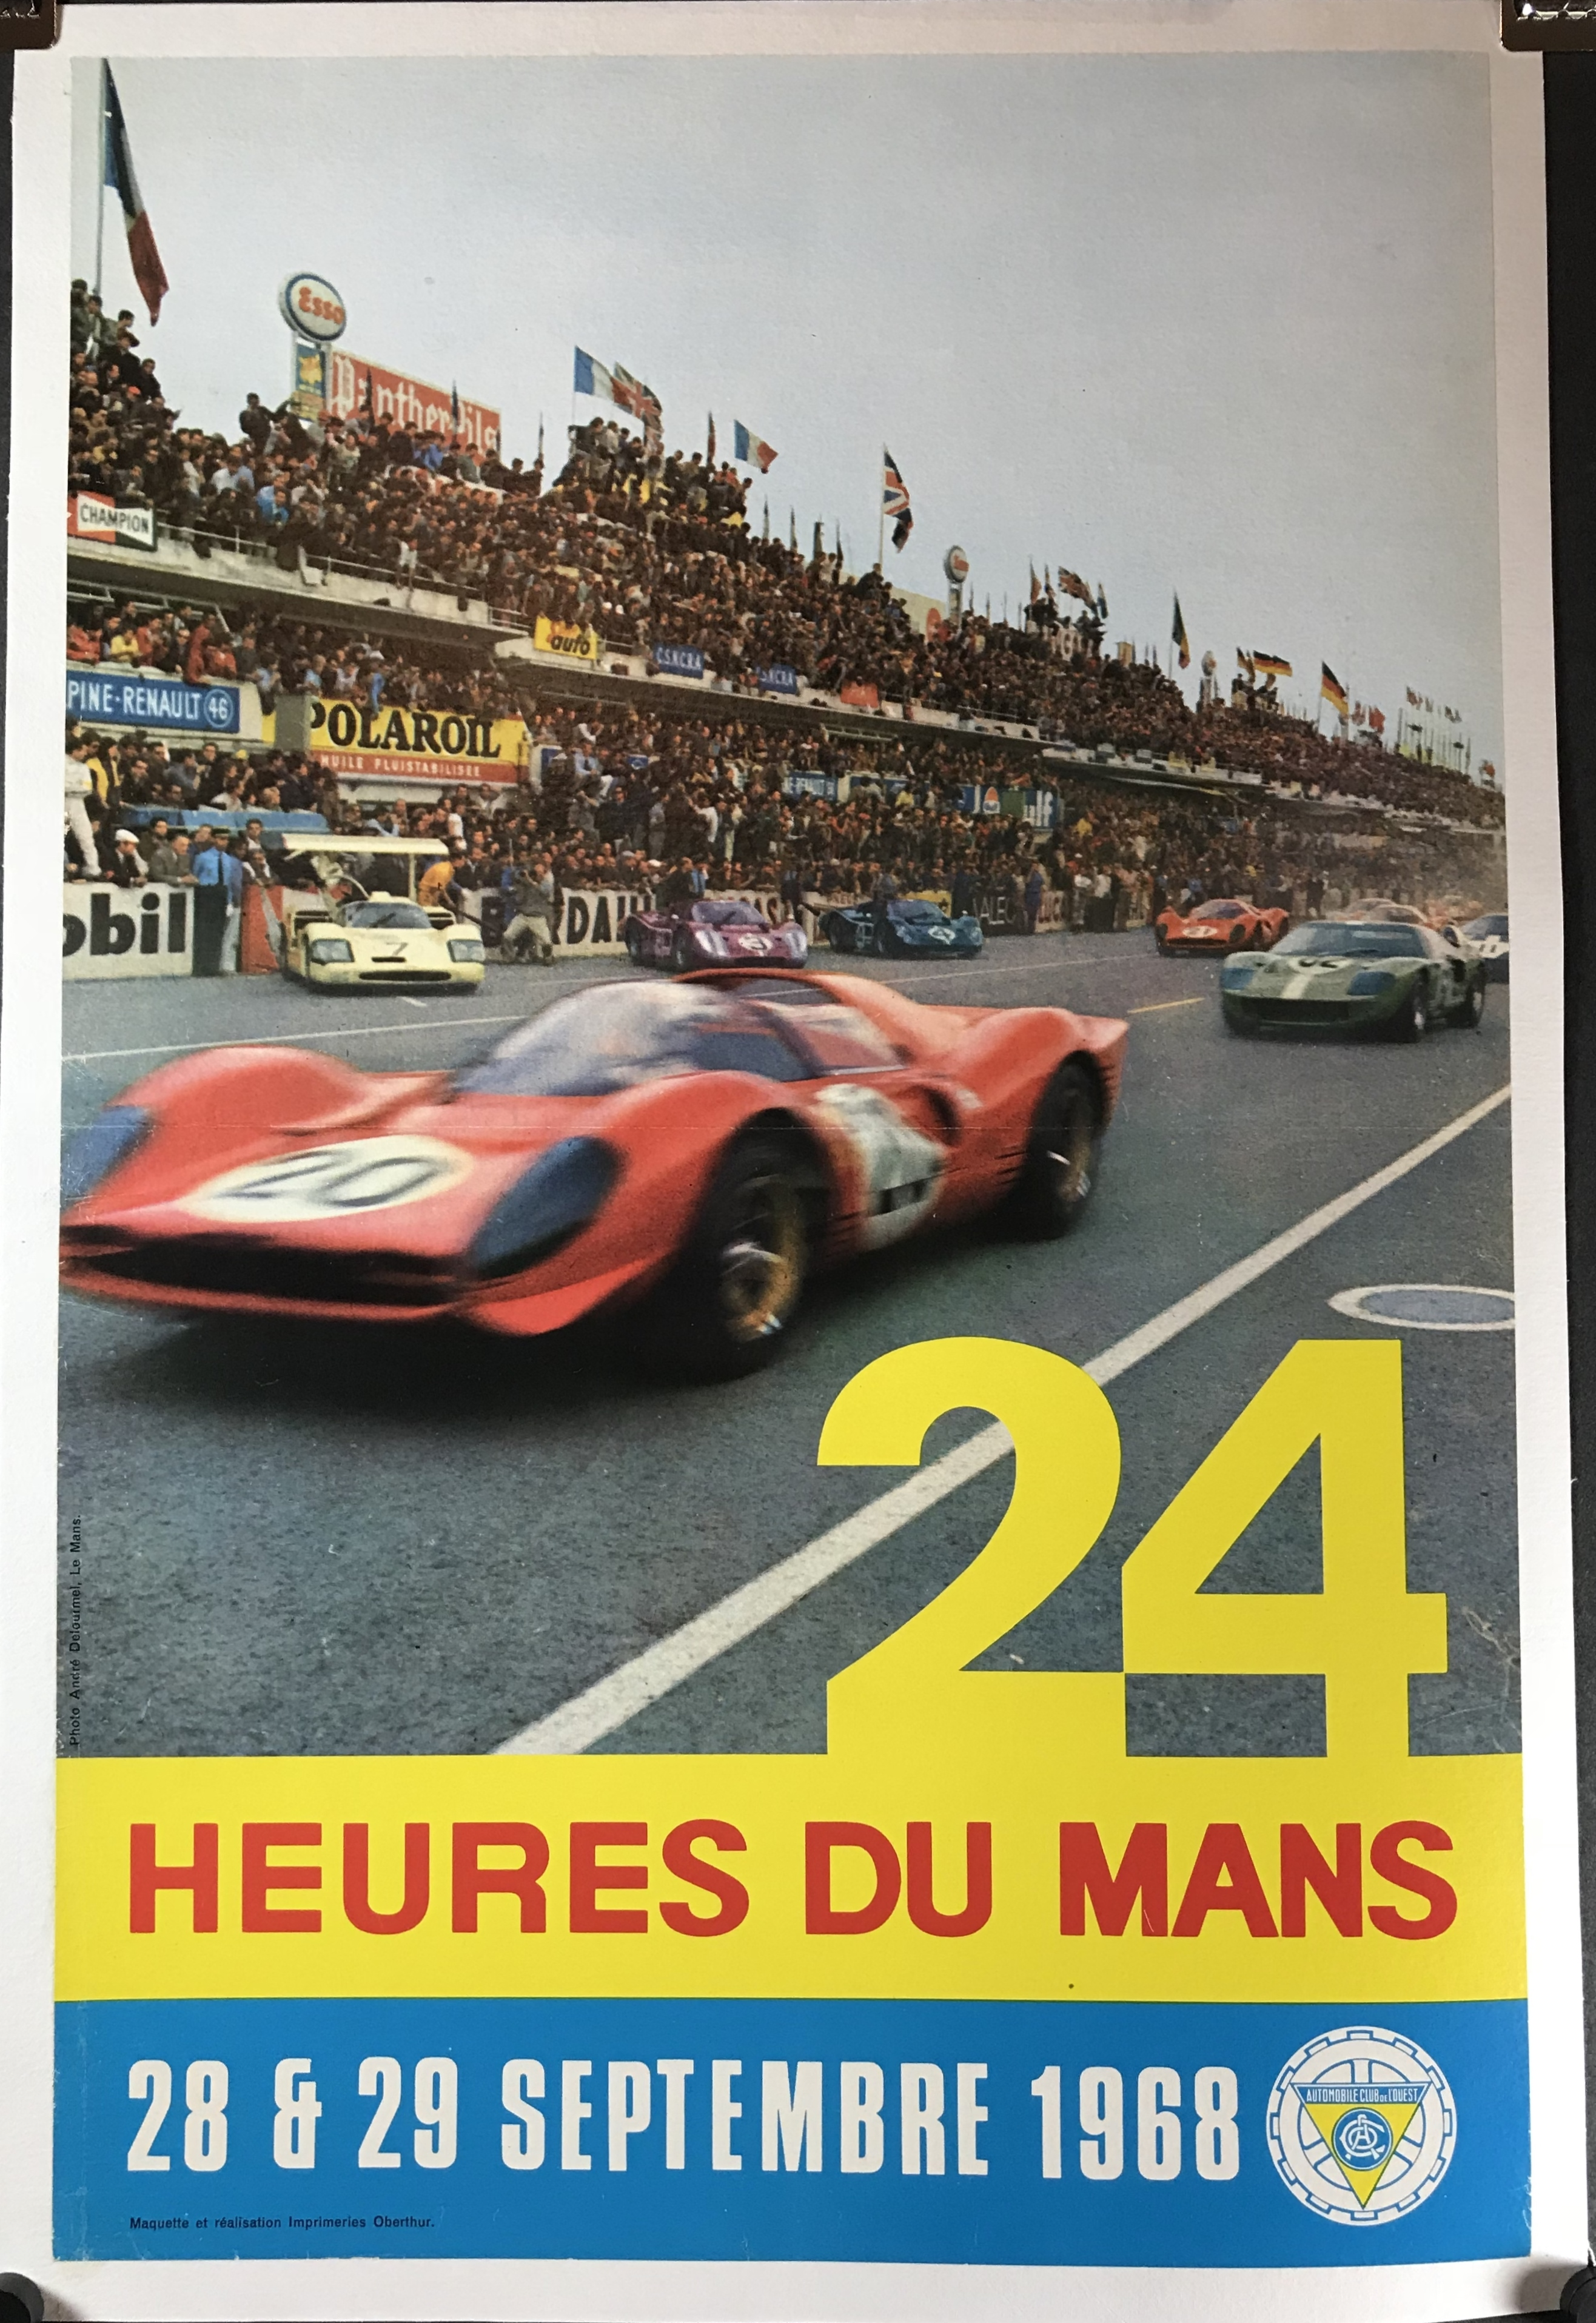 1968 24 heures du mans original vintage car racing poster ferrari 250. Black Bedroom Furniture Sets. Home Design Ideas